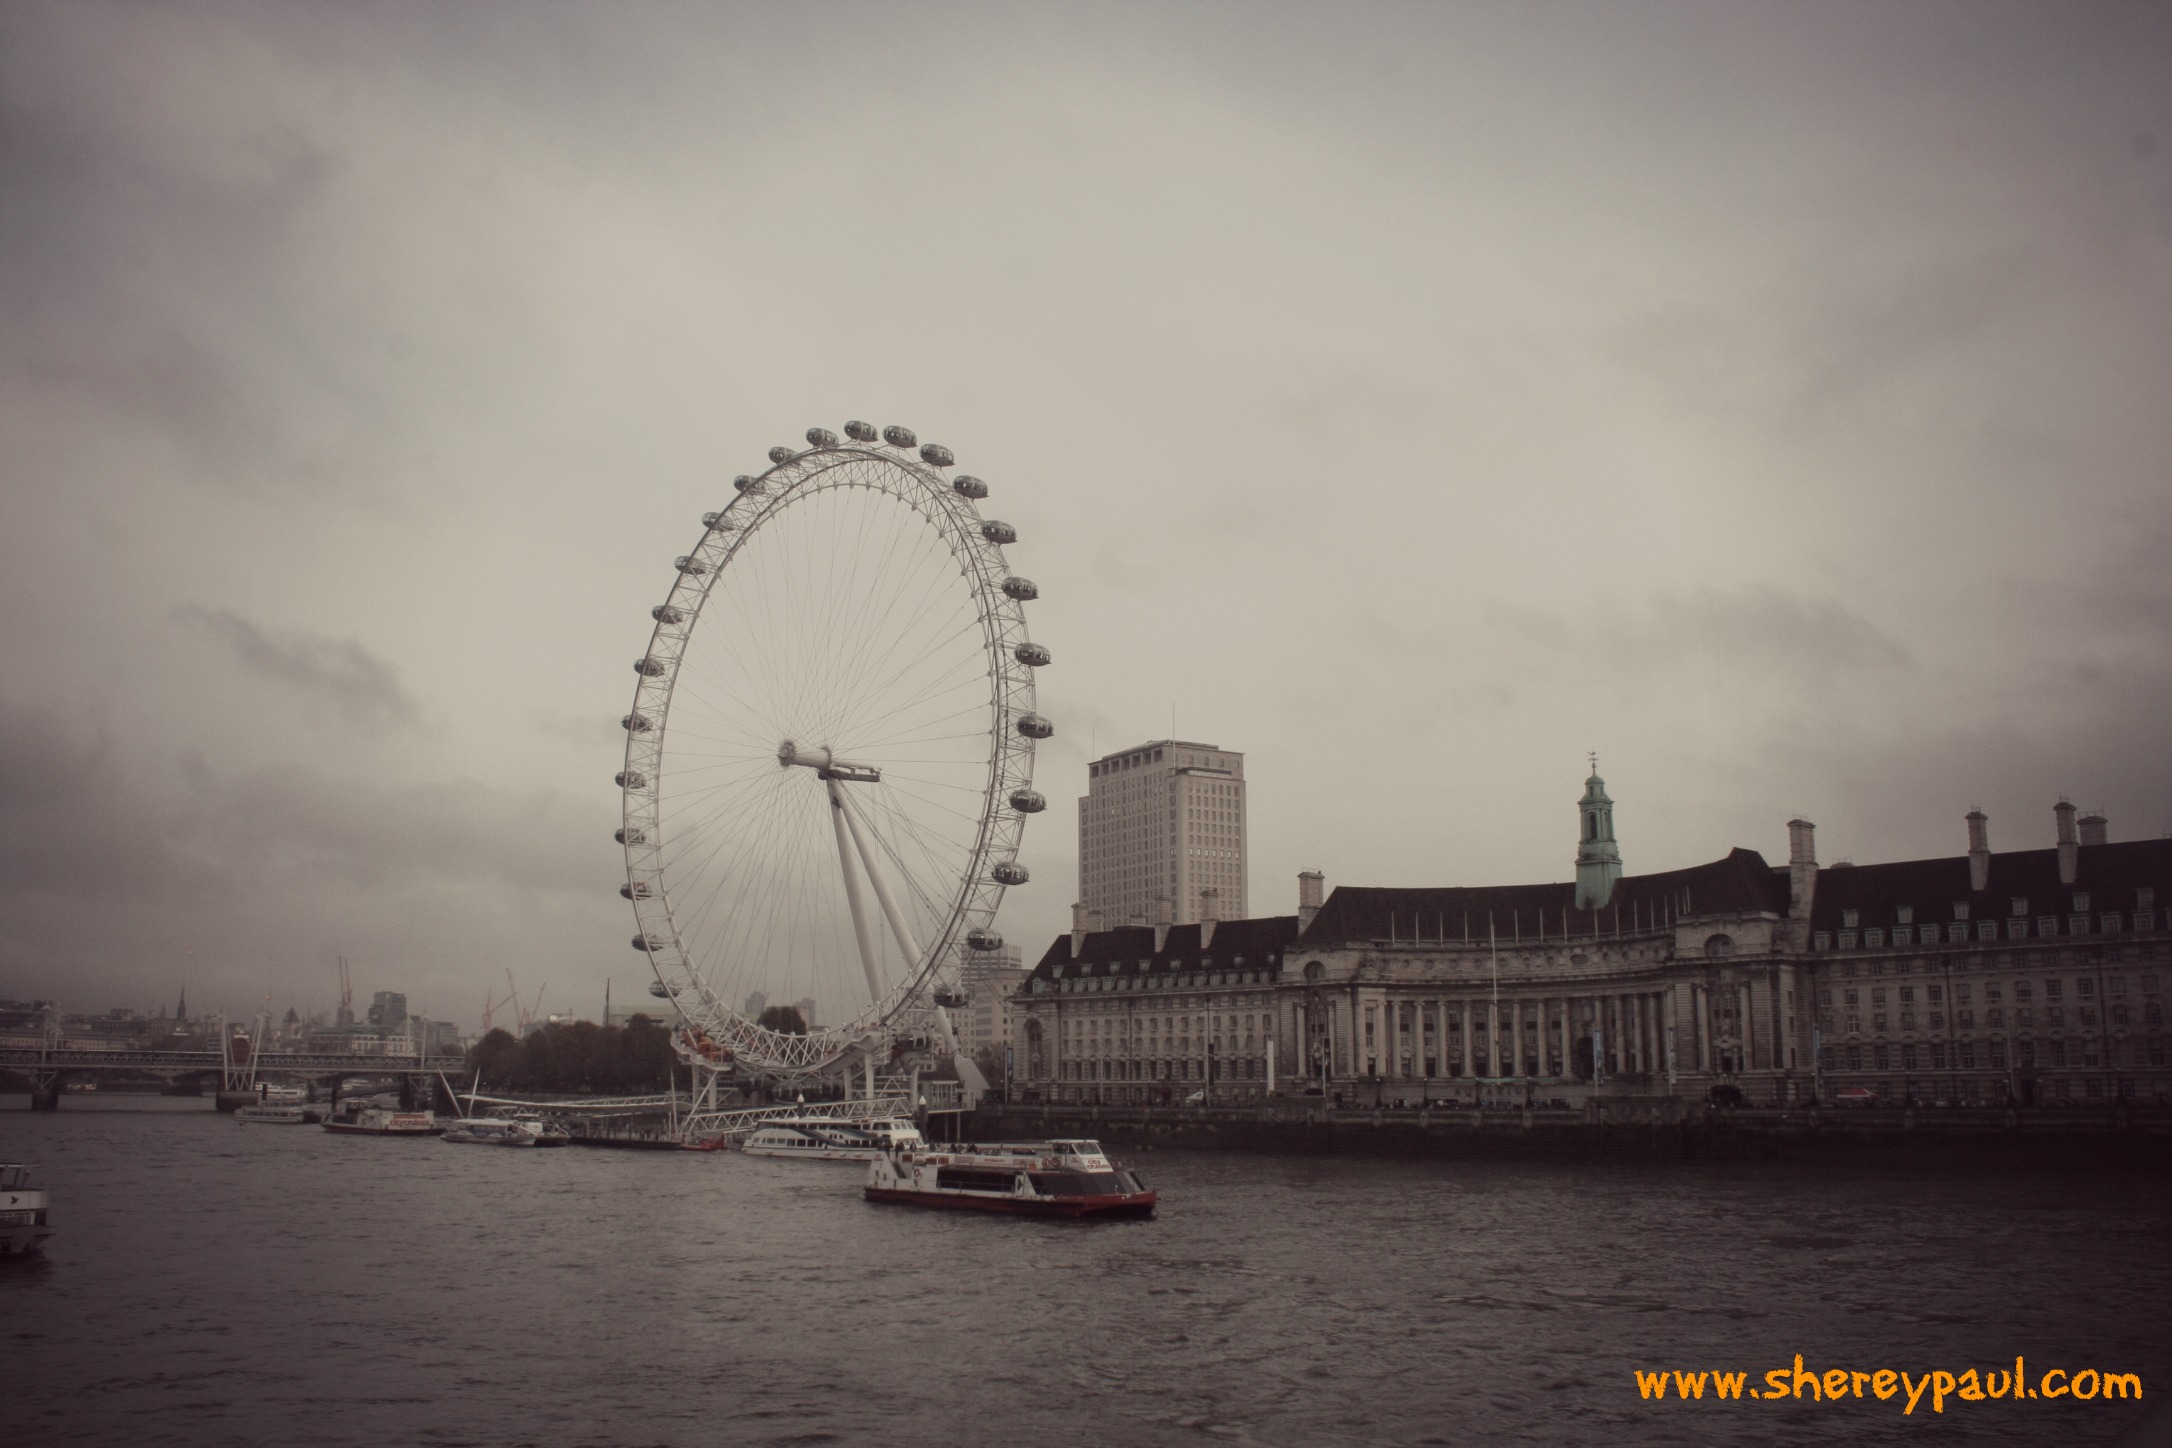 London Eye and Sea Life Aquarium